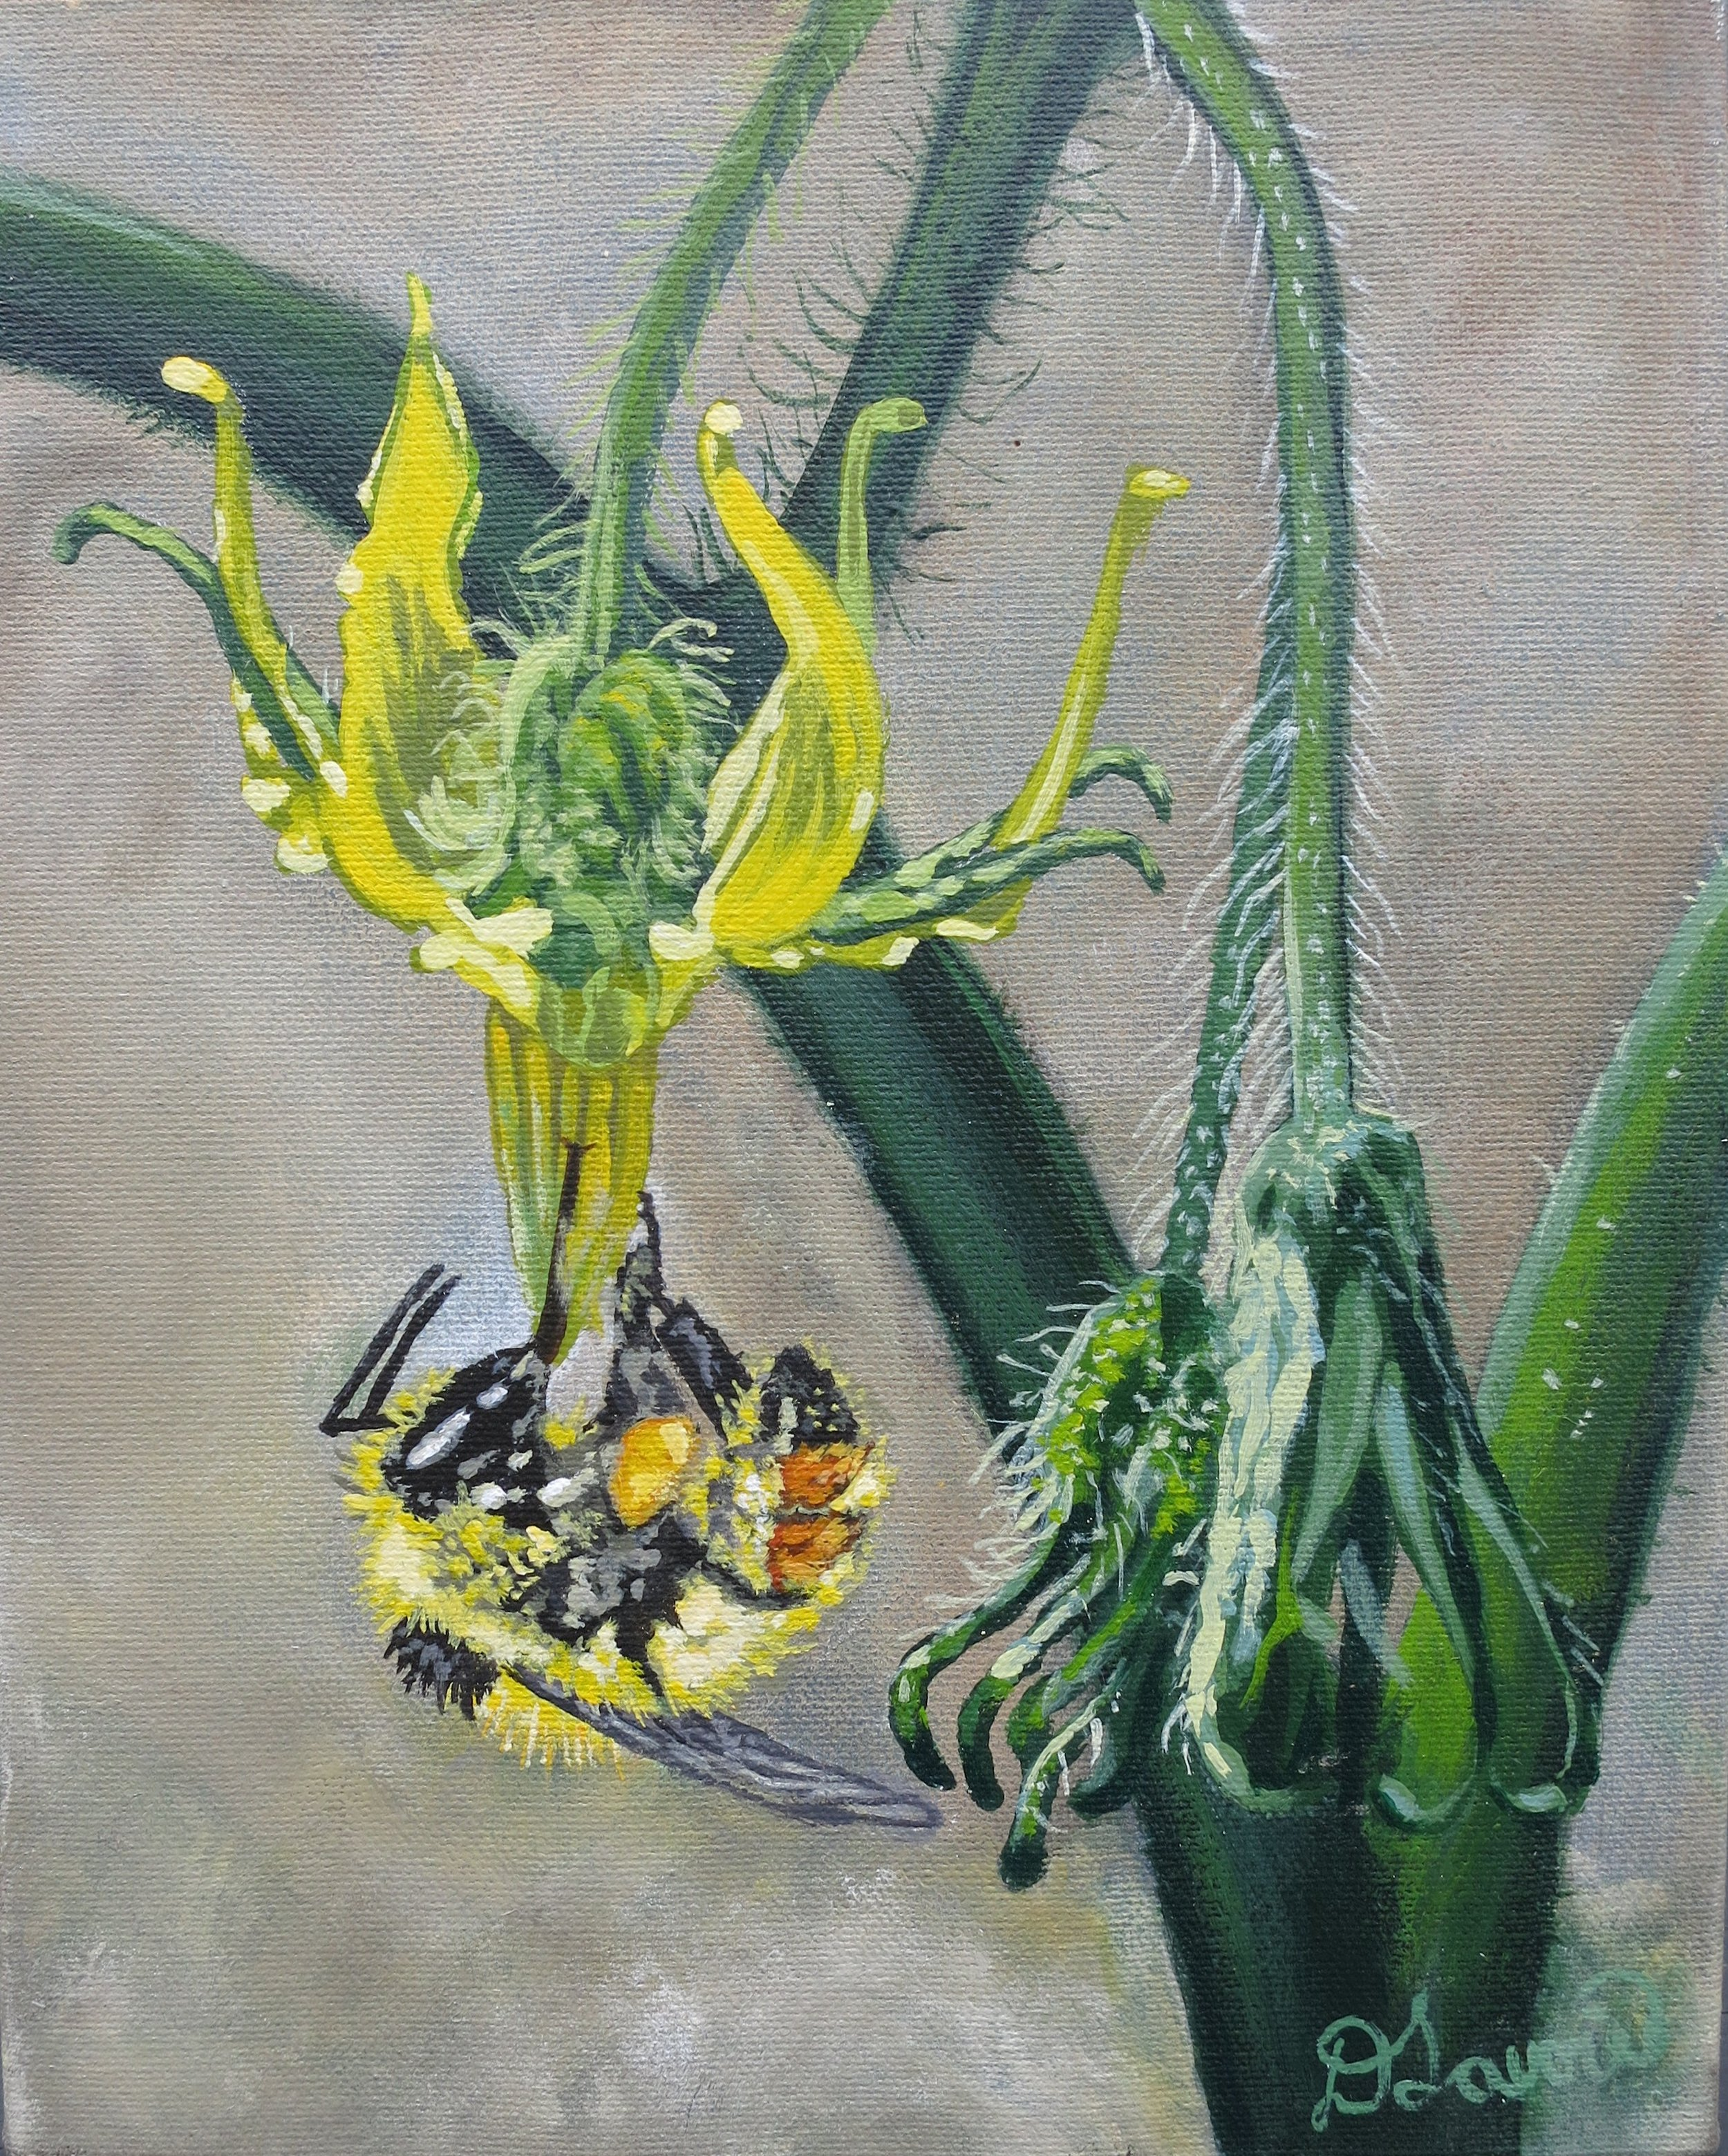 """Come to My Garden      Acrylic on Canvas - 8"""" x 10""""   Although the original has sold -limited edition prints are available.   As this bee clung dangling from the flower on my tomato plant, he seemed the poster bee for my garden pollination."""